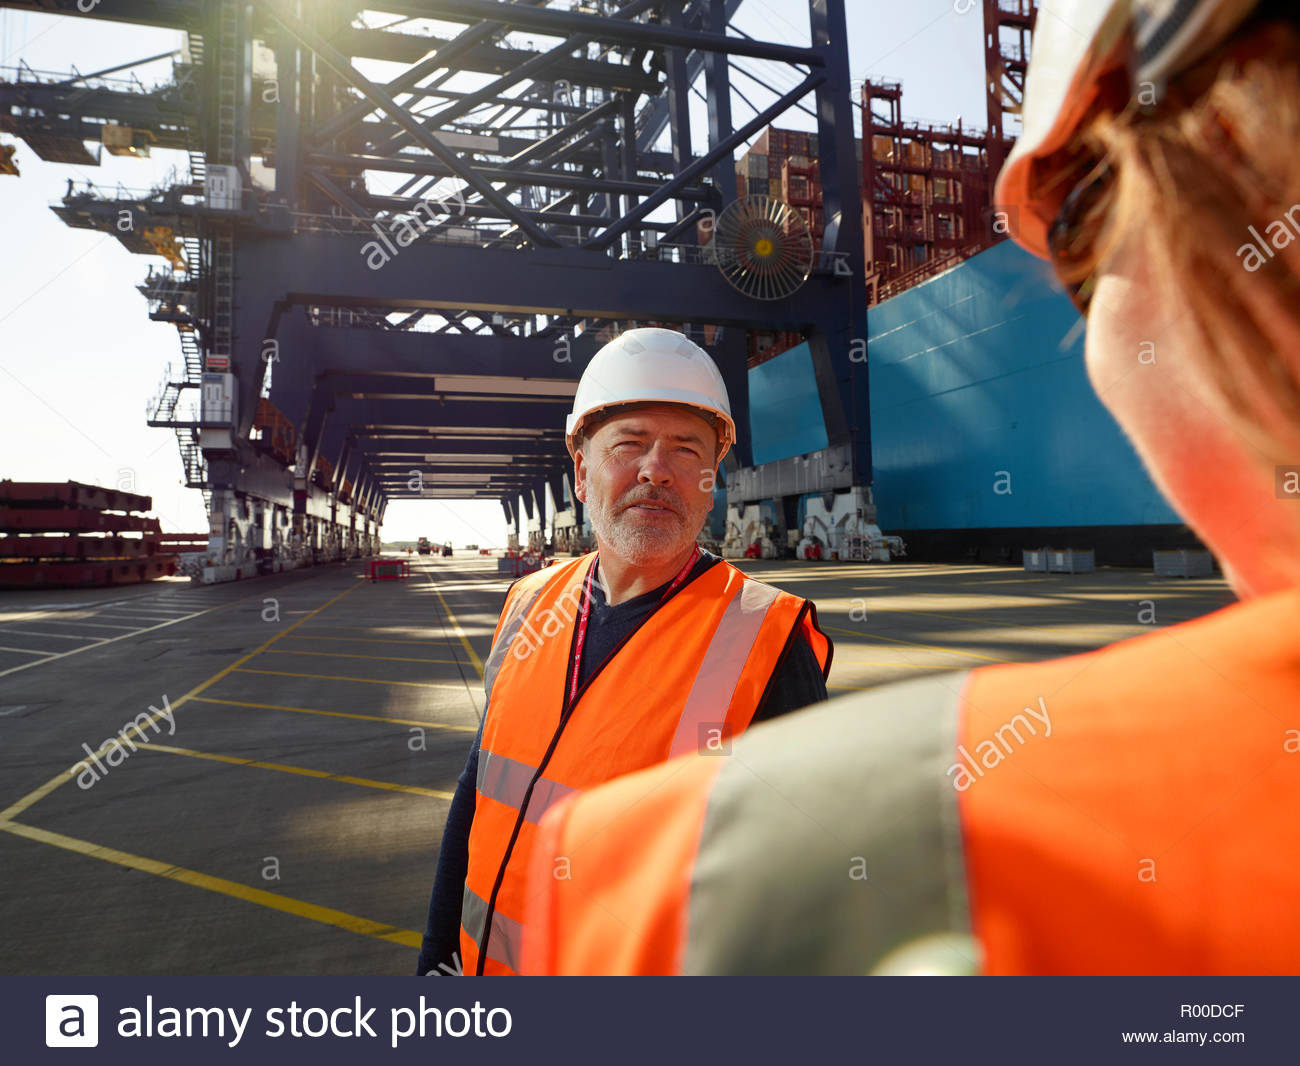 Dock workers by cargo ship at Port of Felixstowe, England Stock Photo